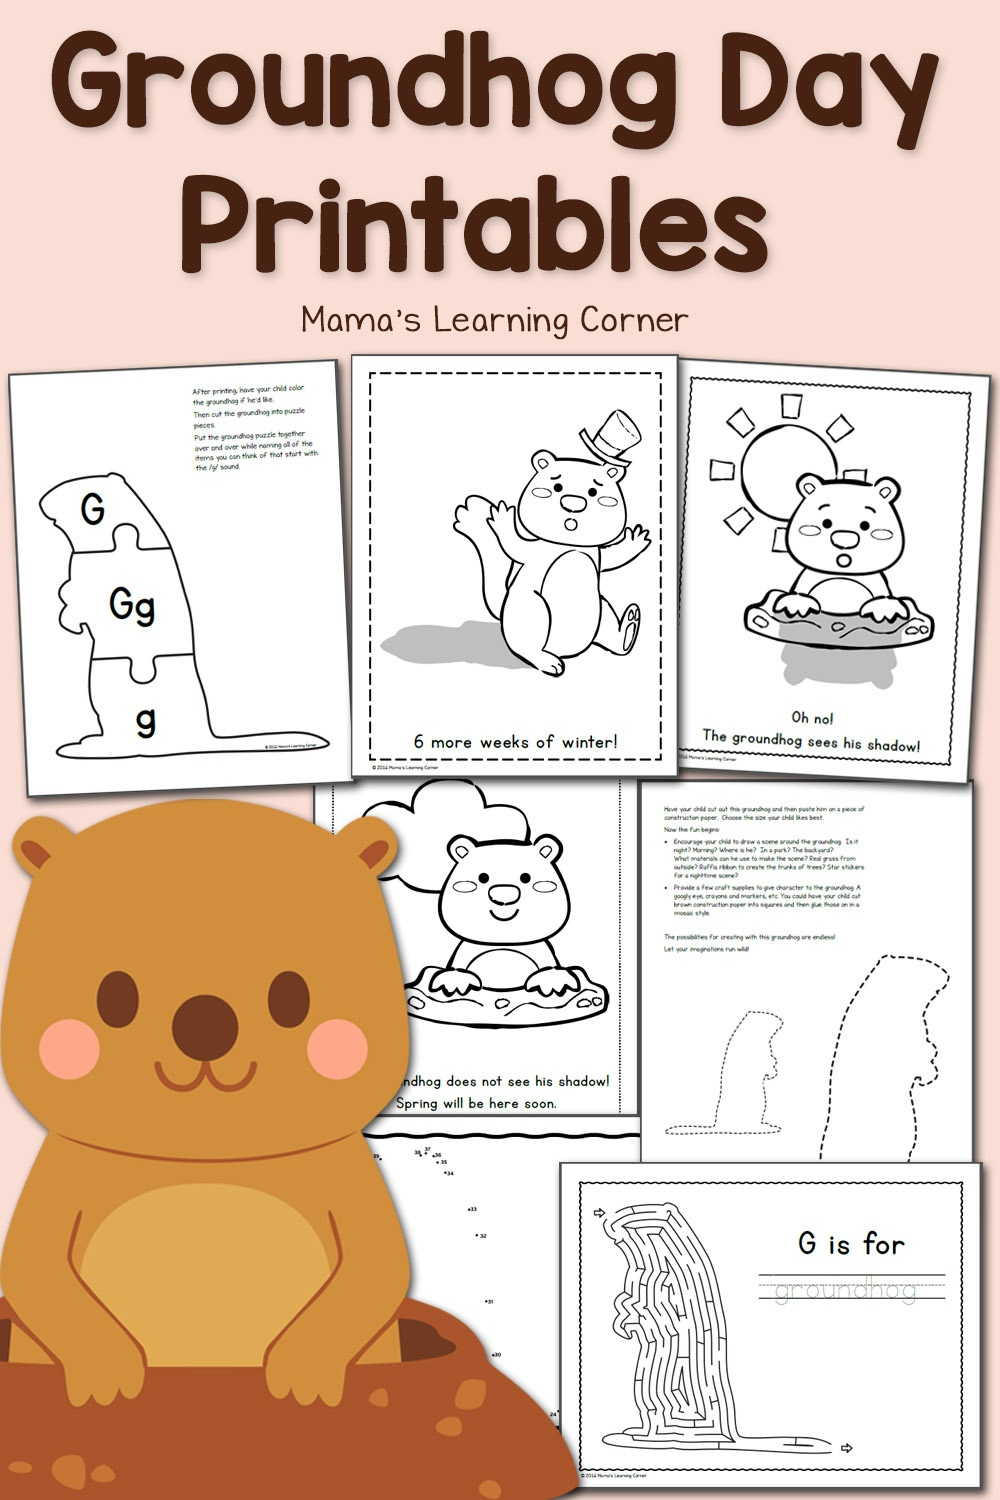 Free Groundhog Day Printables! - Mamas Learning Corner - Free Groundhog Day Printables